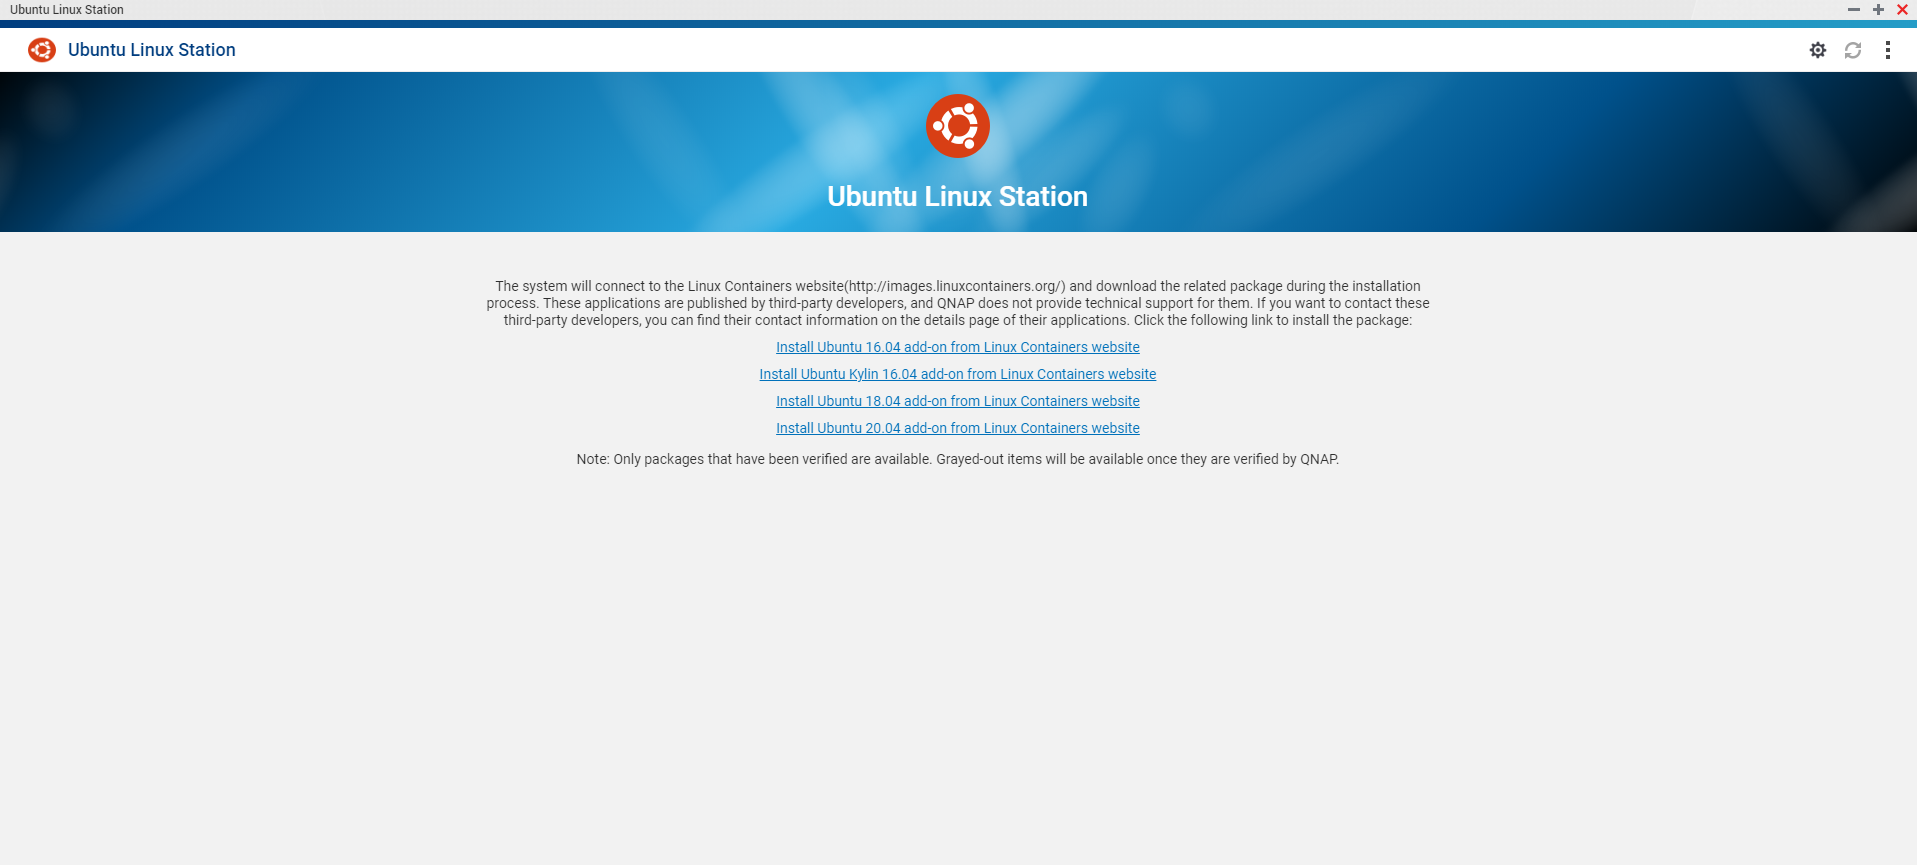 How to install Ubuntu on Linux Station and launch software